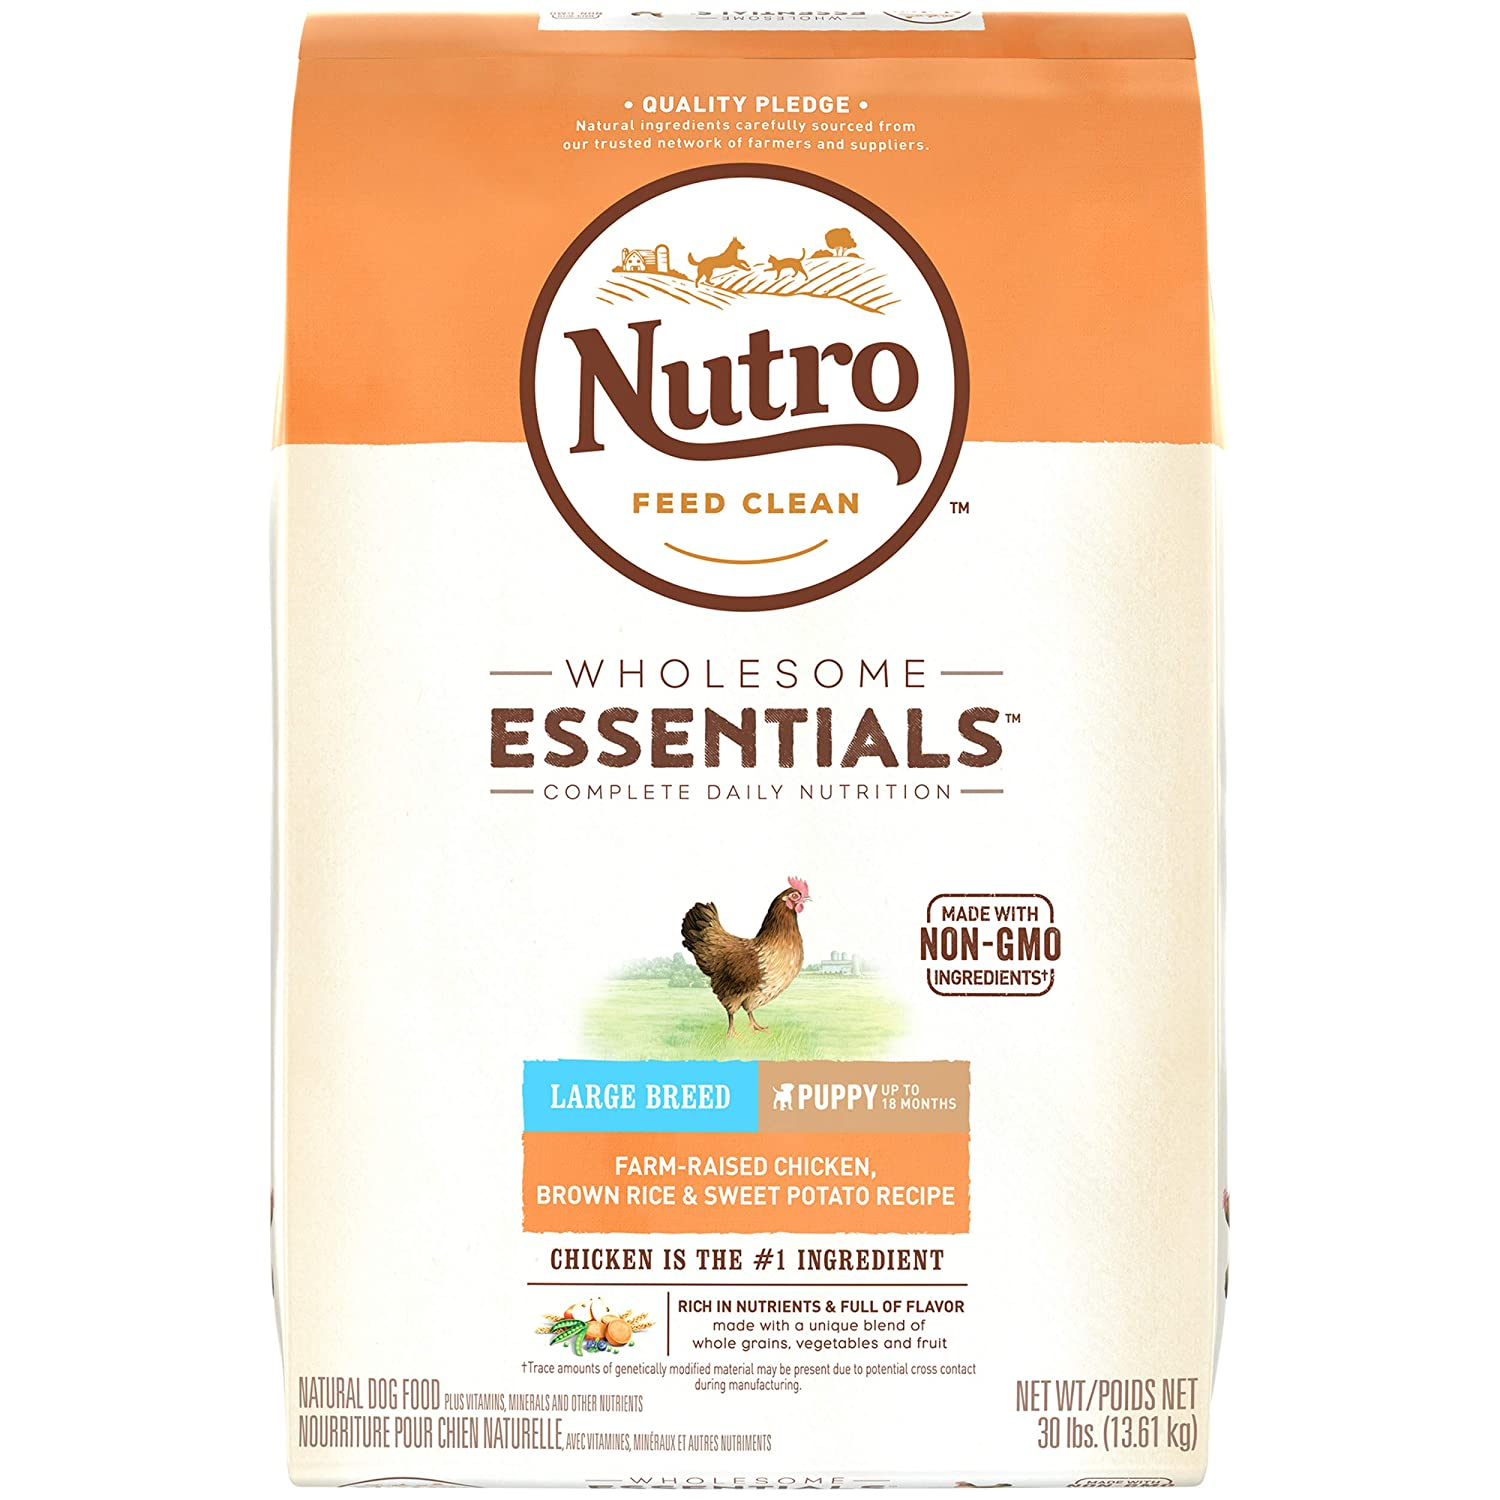 5.NUTRO Wholesome Essentials Puppy Dry Dog Food